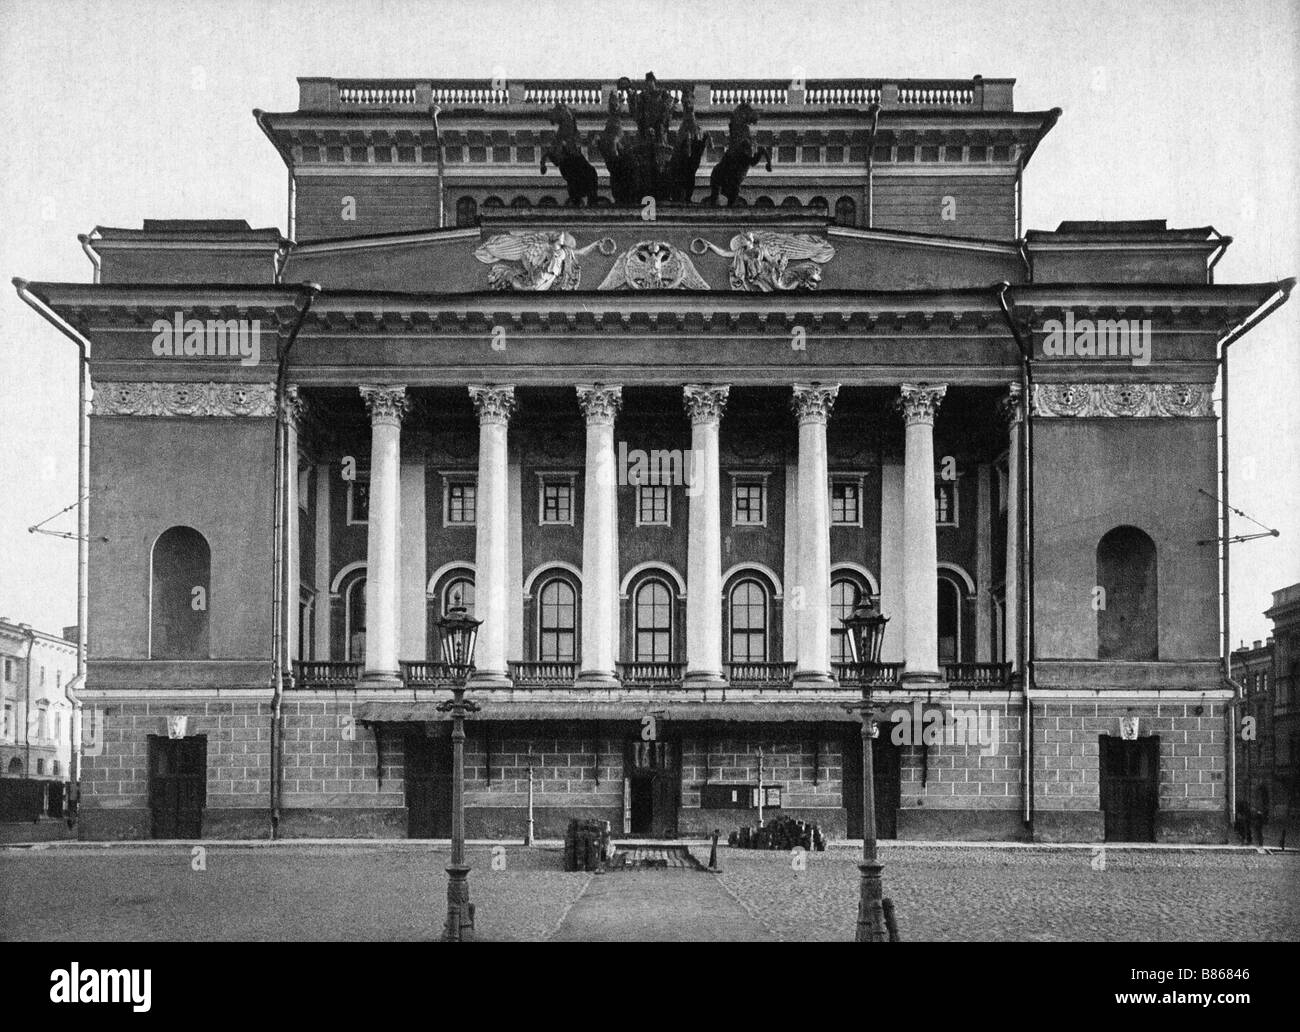 Russia, St. Petersburg in the 19th century - Stock Image